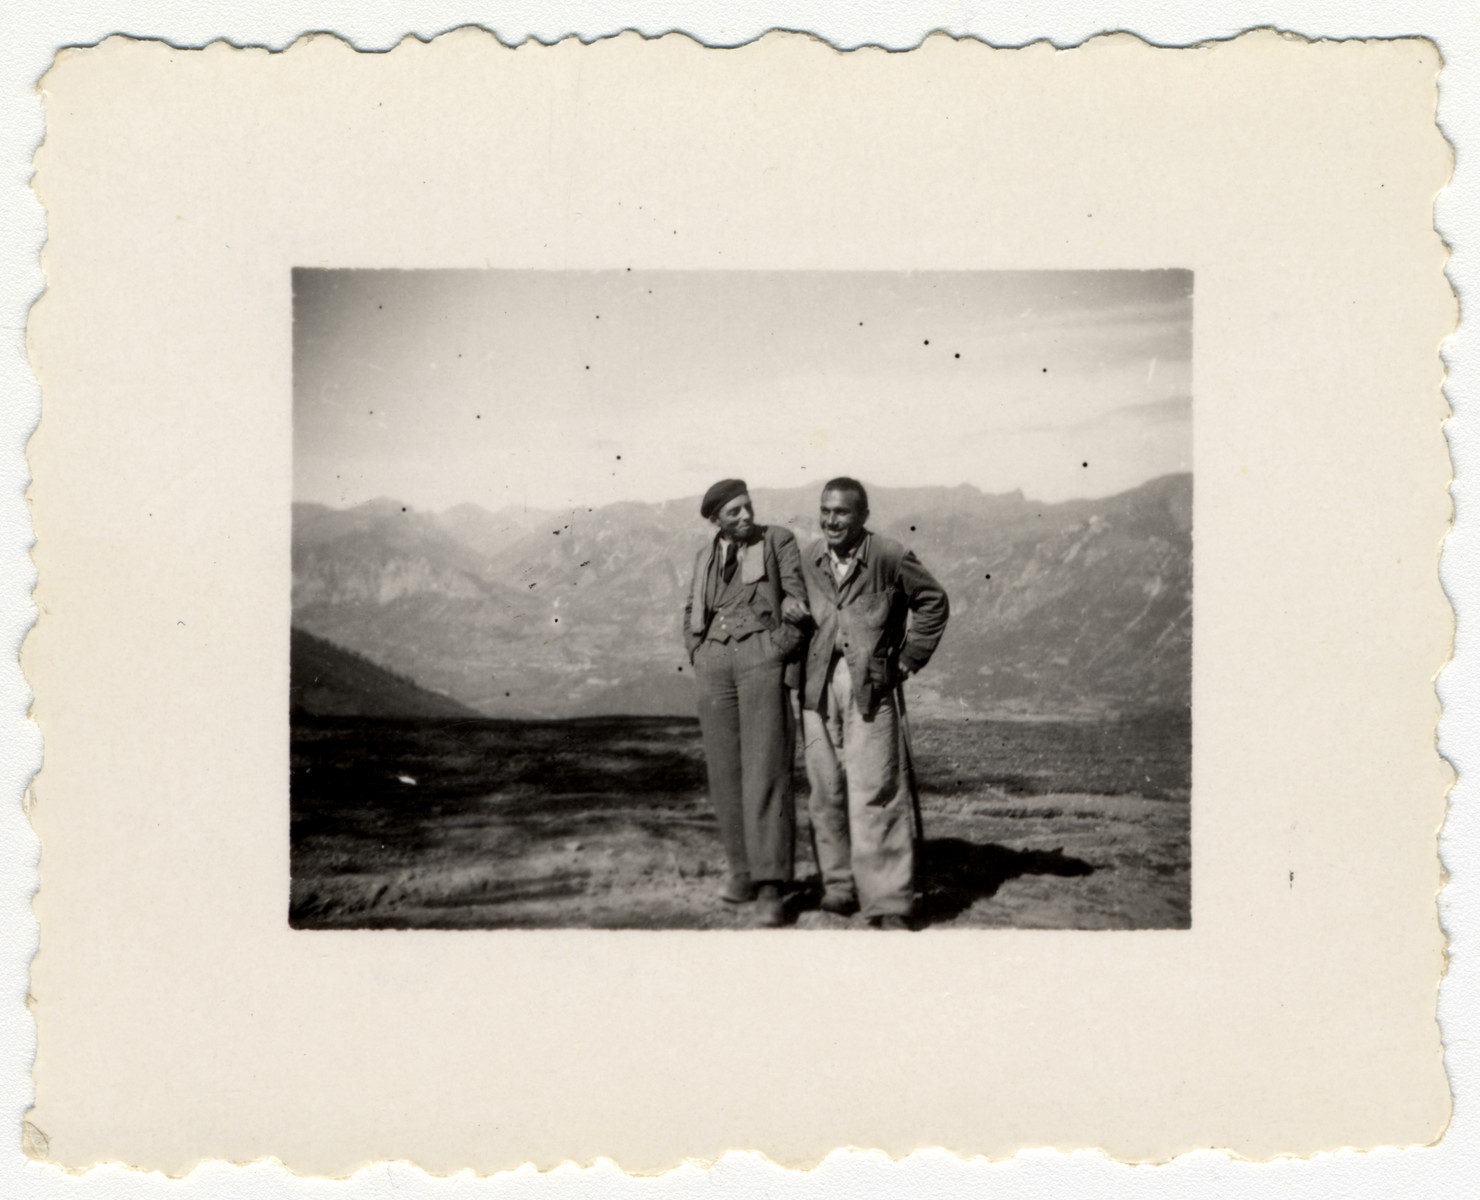 Austrian Jewish refugees, Franz Edelshein and Schwartz, pose with the Alps in the background in southern France.  Franz Edelshein was later arrested while trying to cross the border into Switzerland.